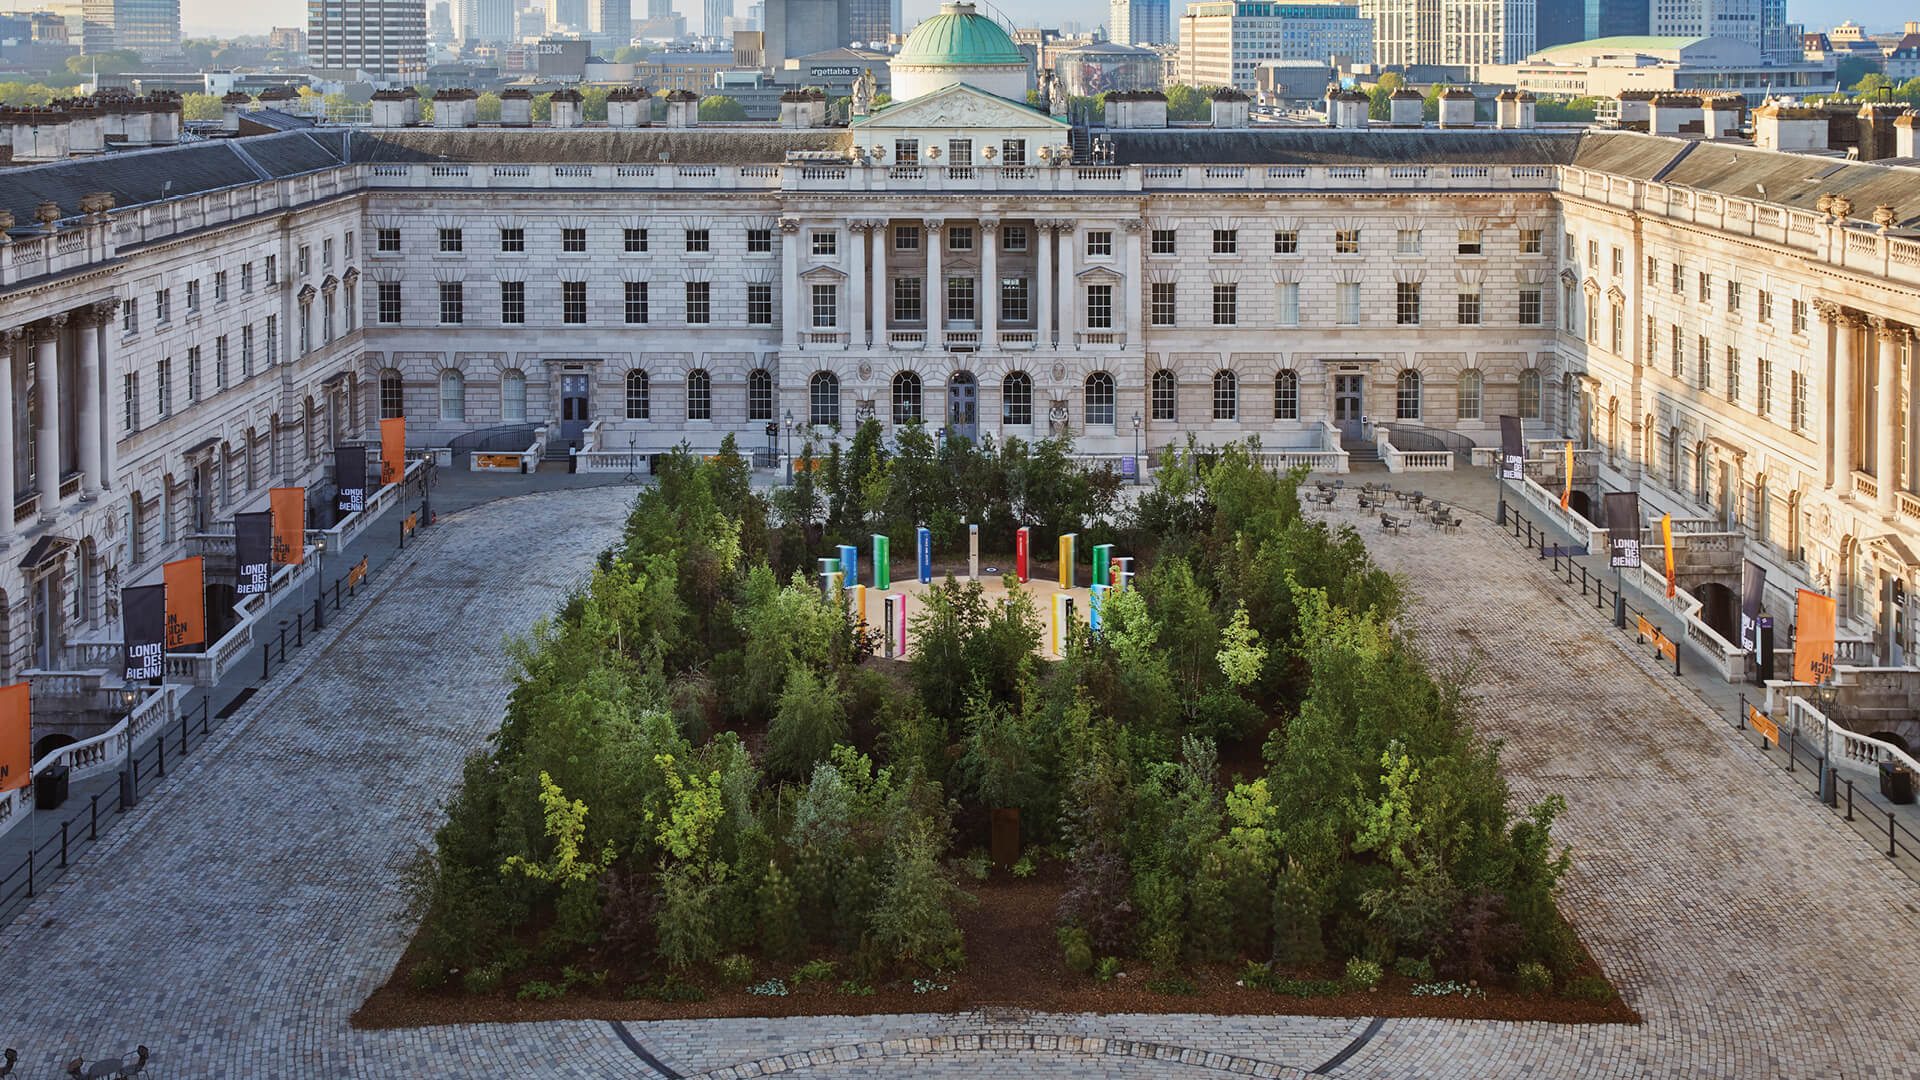 Es Devlin's 'Forest for Change' overtakes Somerset House courtyard with 400 trees